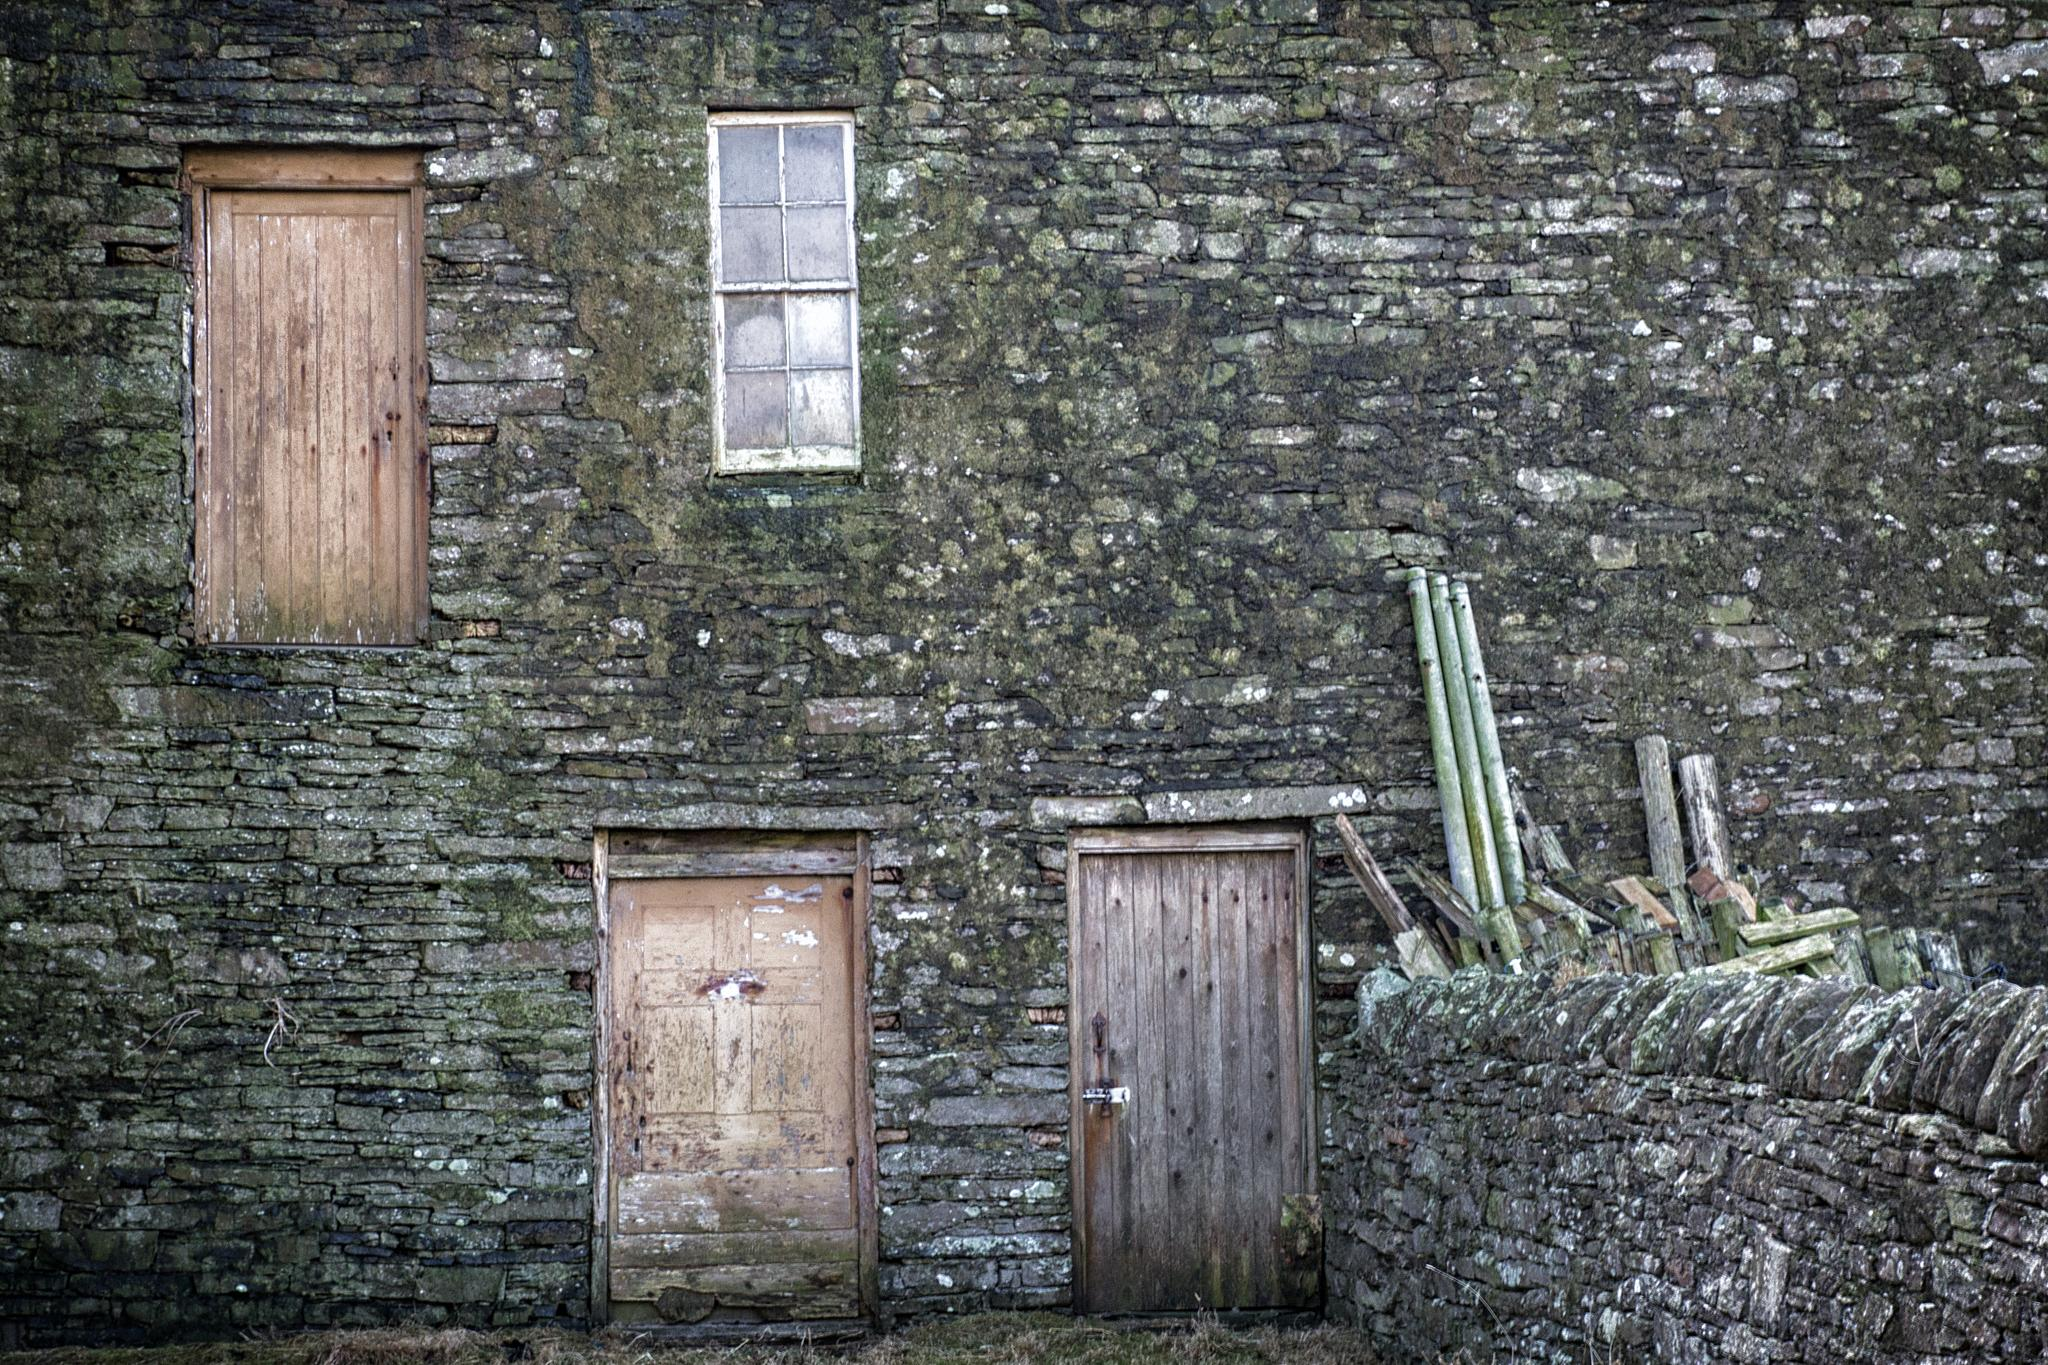 Doors and window at Scar House by isegarth